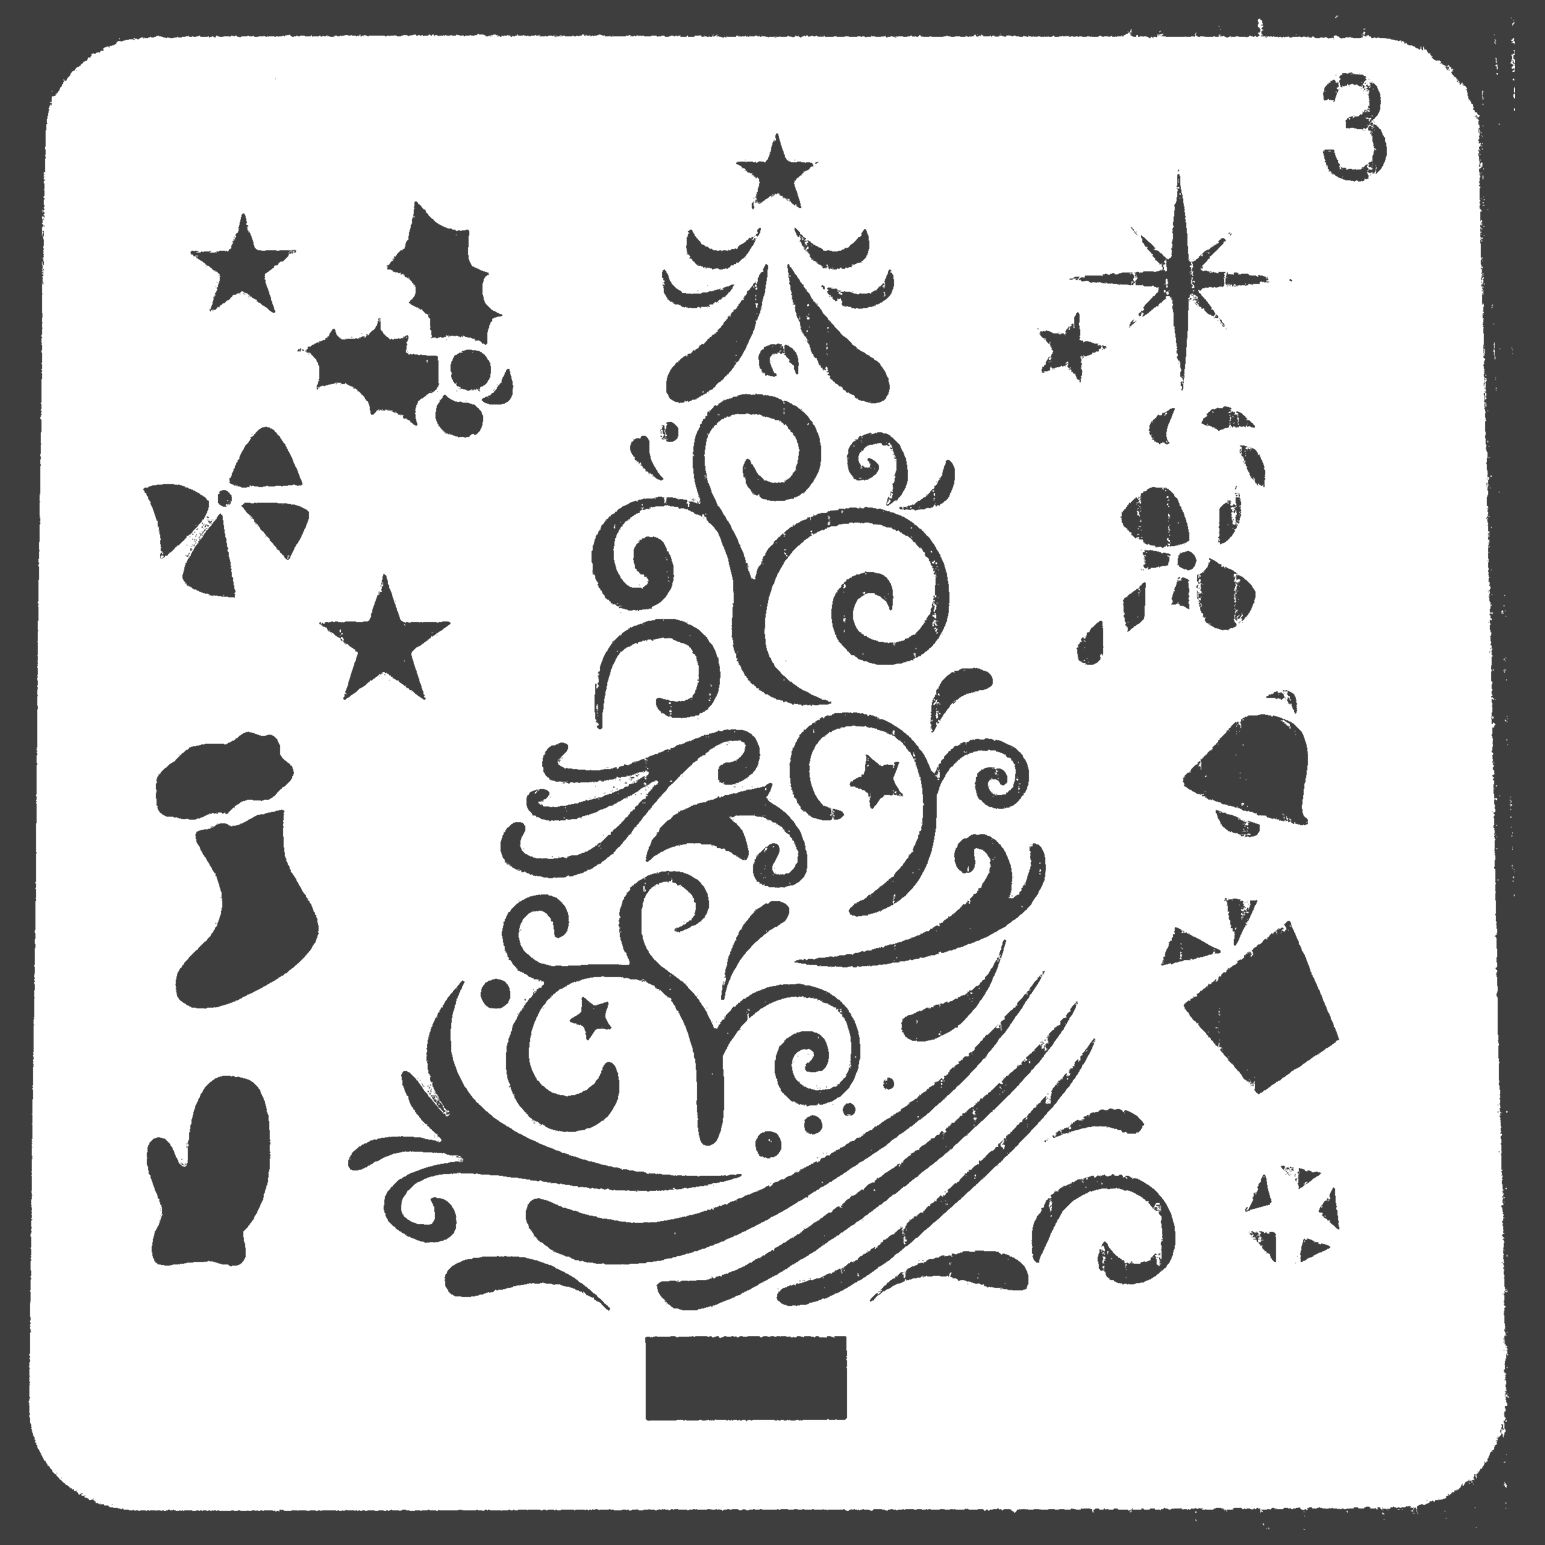 Merry Christmas Tree Stencils For Painting Scrapbooking